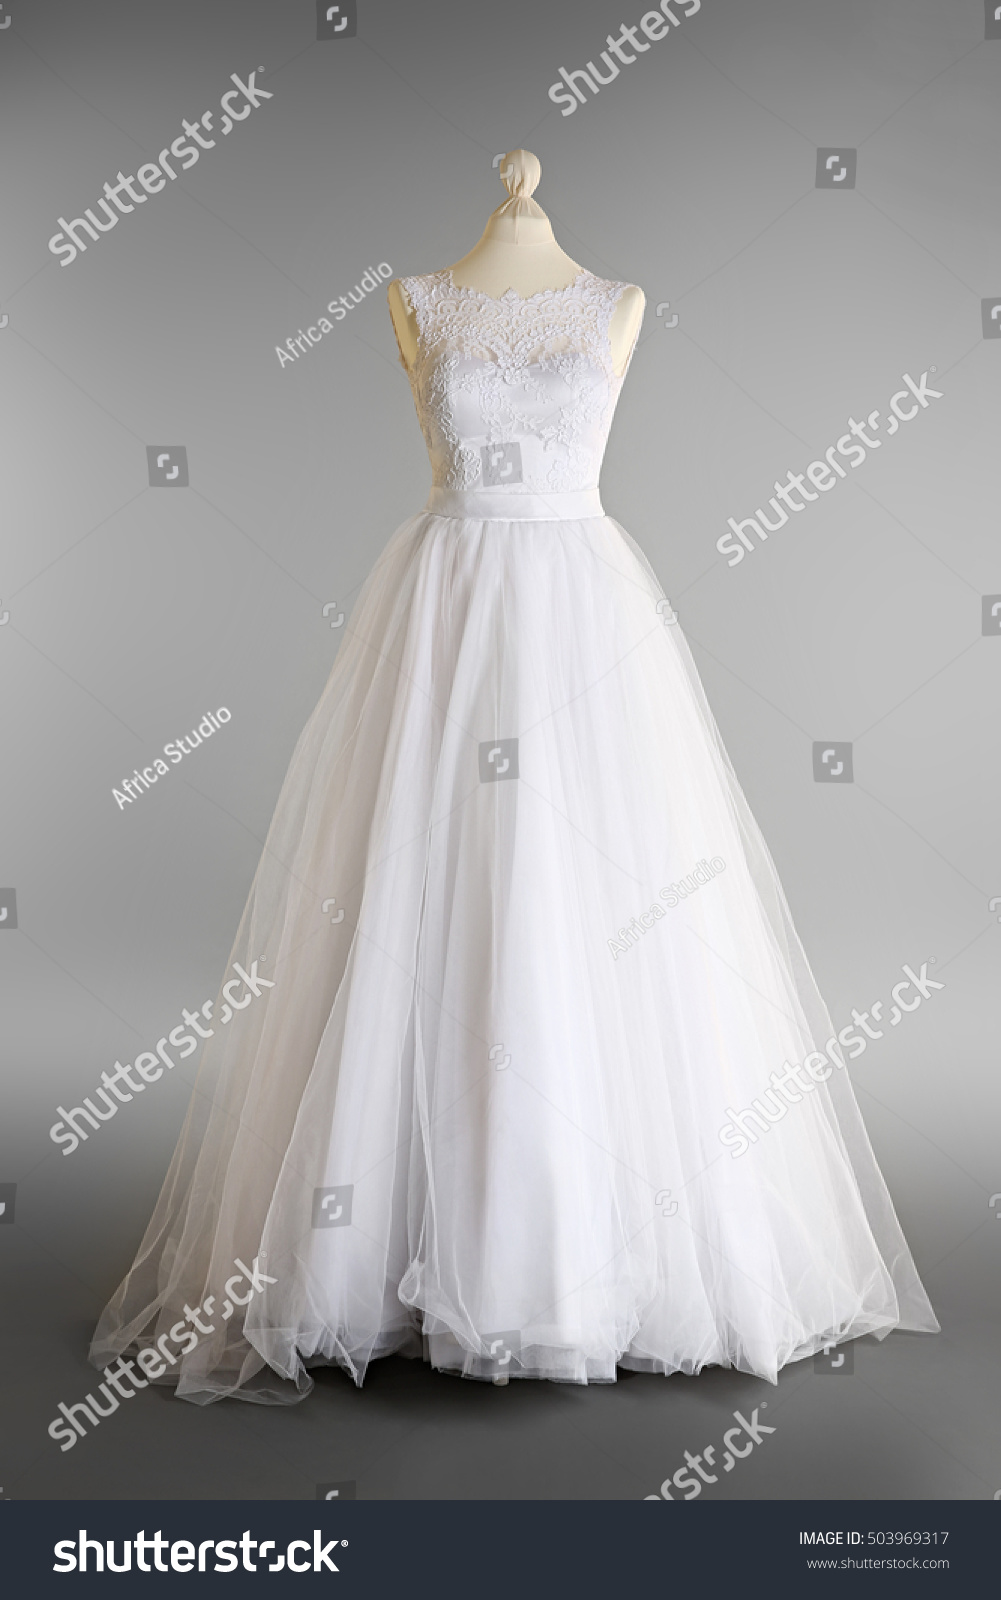 Madeup Wedding Dress On Mannequin Against Stock Photo (100% Legal ...